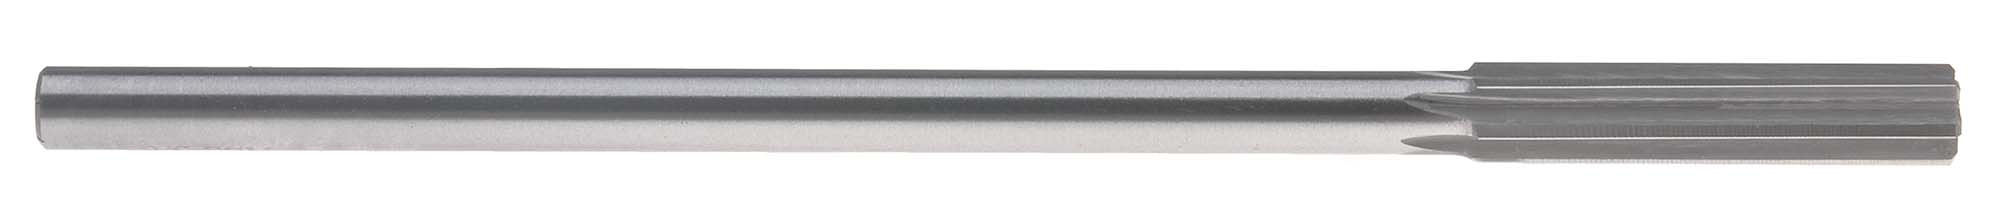 1-7/16 Straight Shank Chucking Reamer, Straight Flute, High Speed Steel